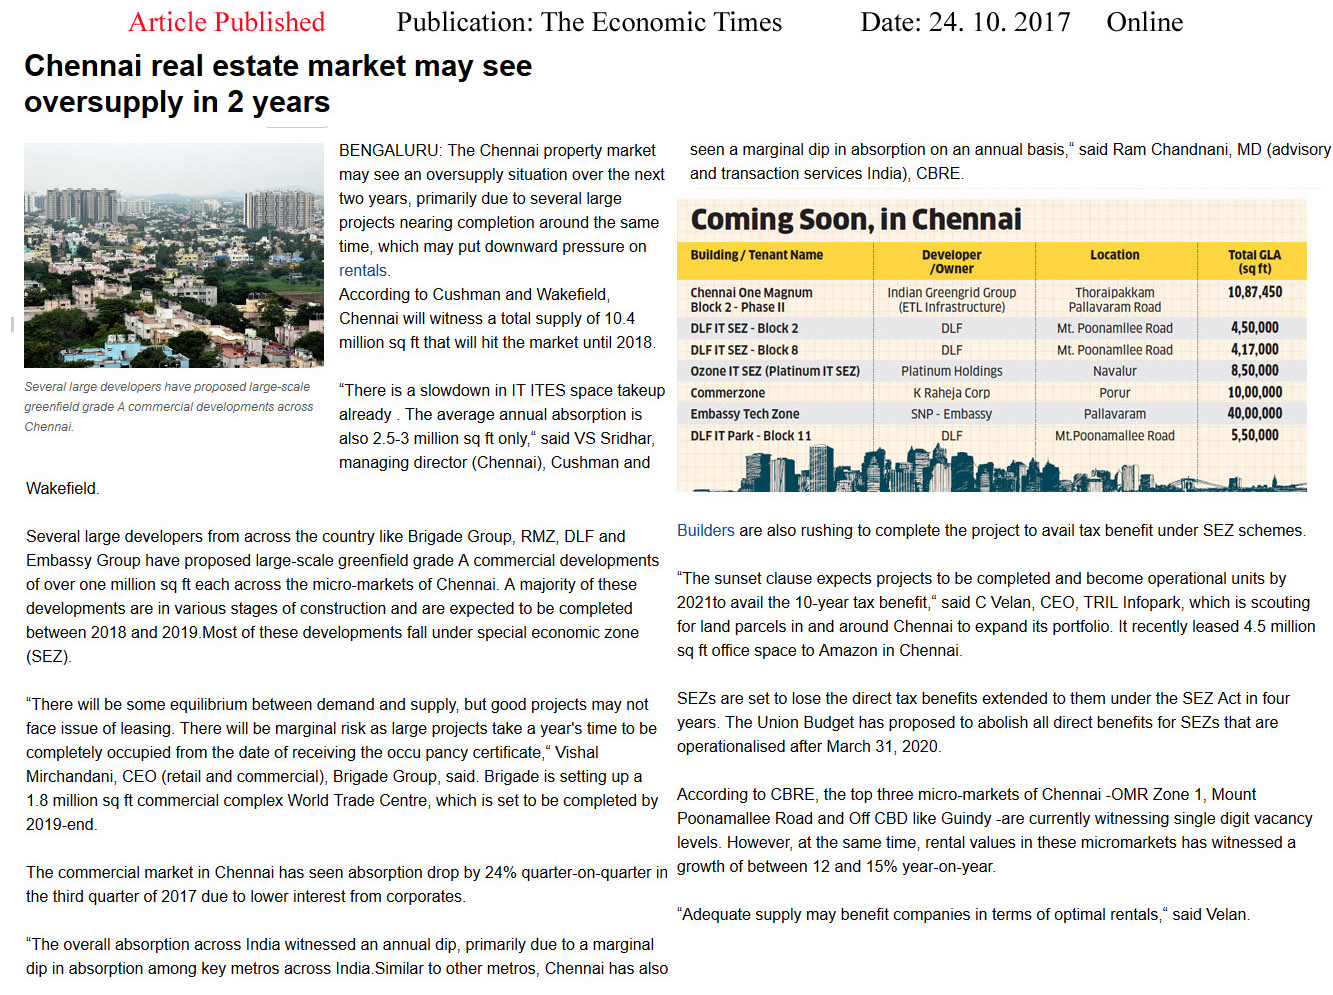 Chennai real estate market may see oversupply in 2 years—The Economic Times–Online